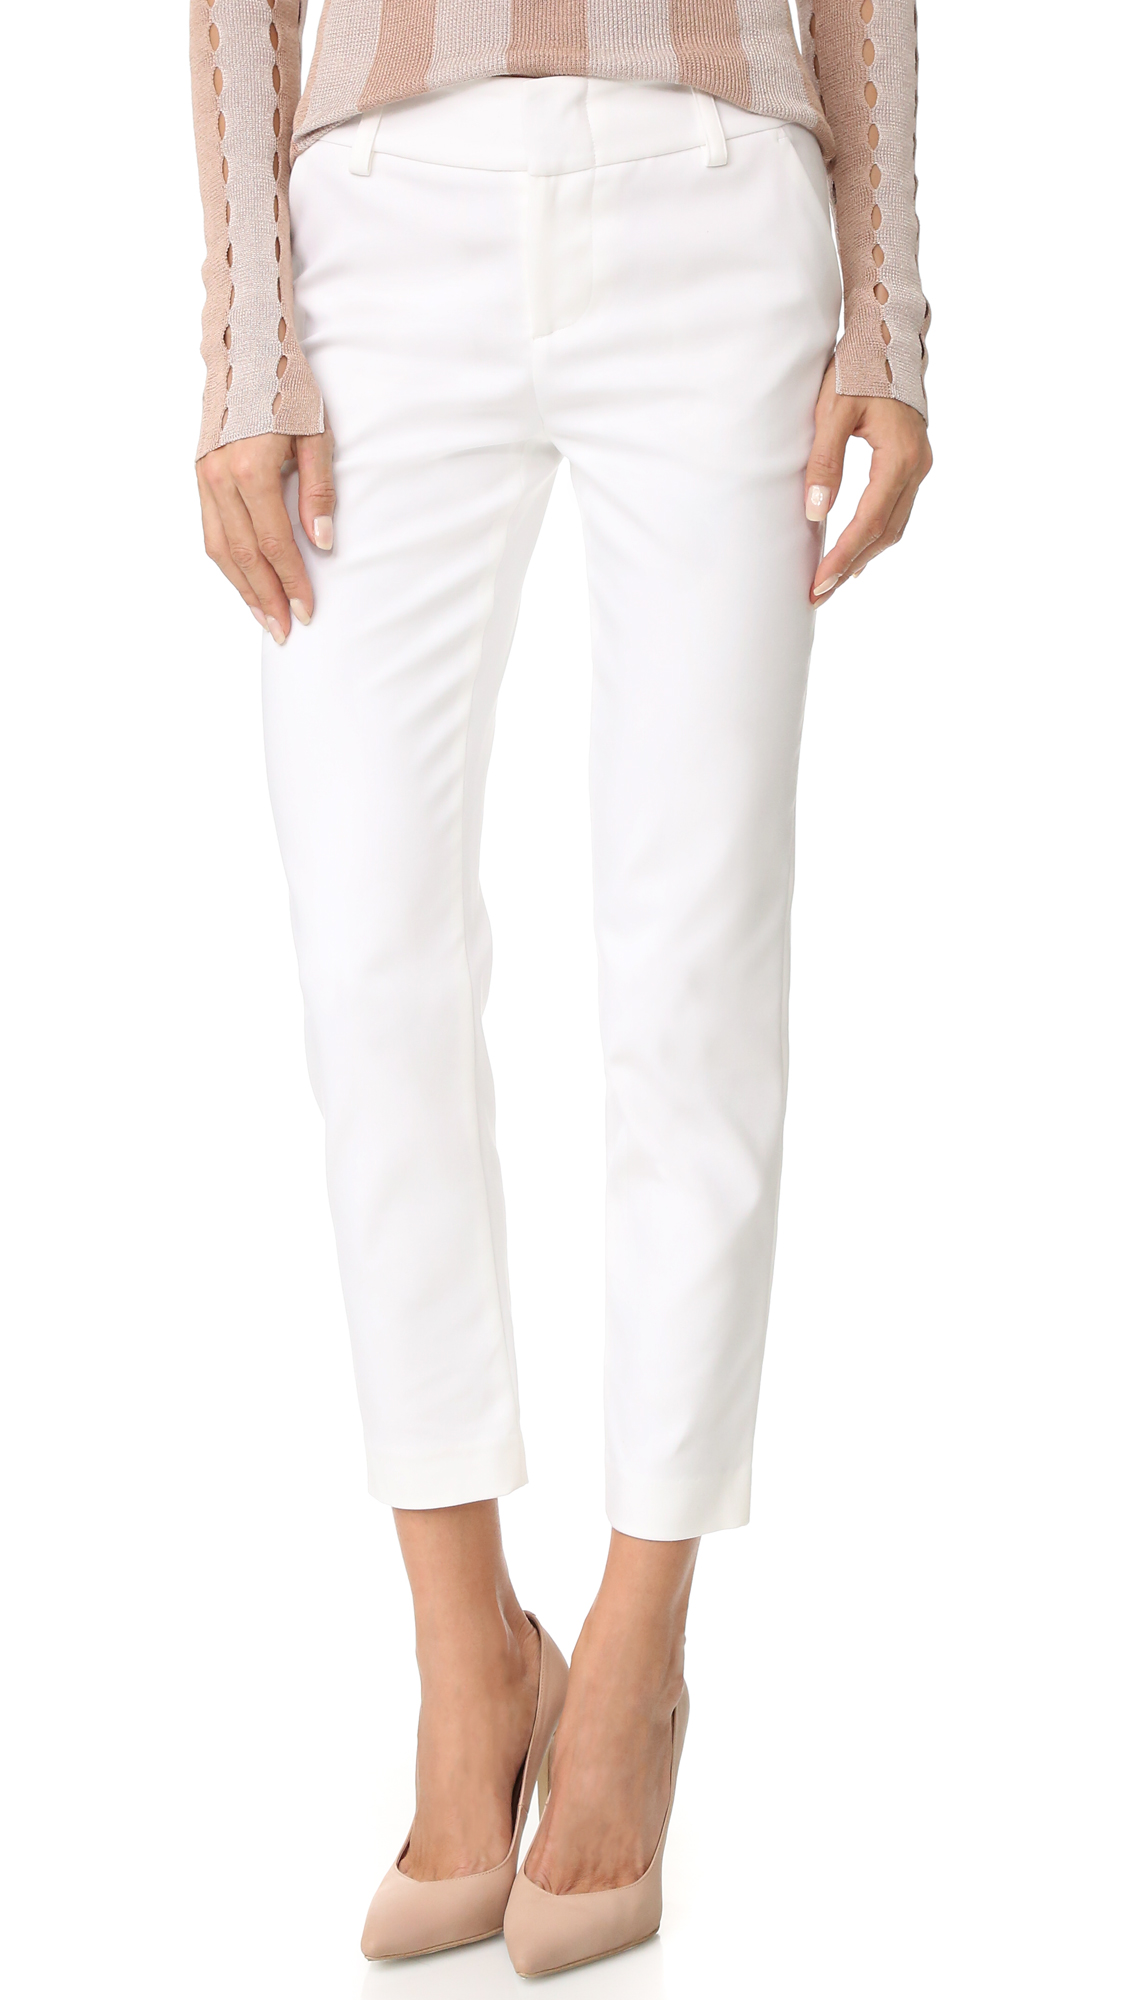 Alice + Olivia Stacey Slim Pants - White at Shopbop